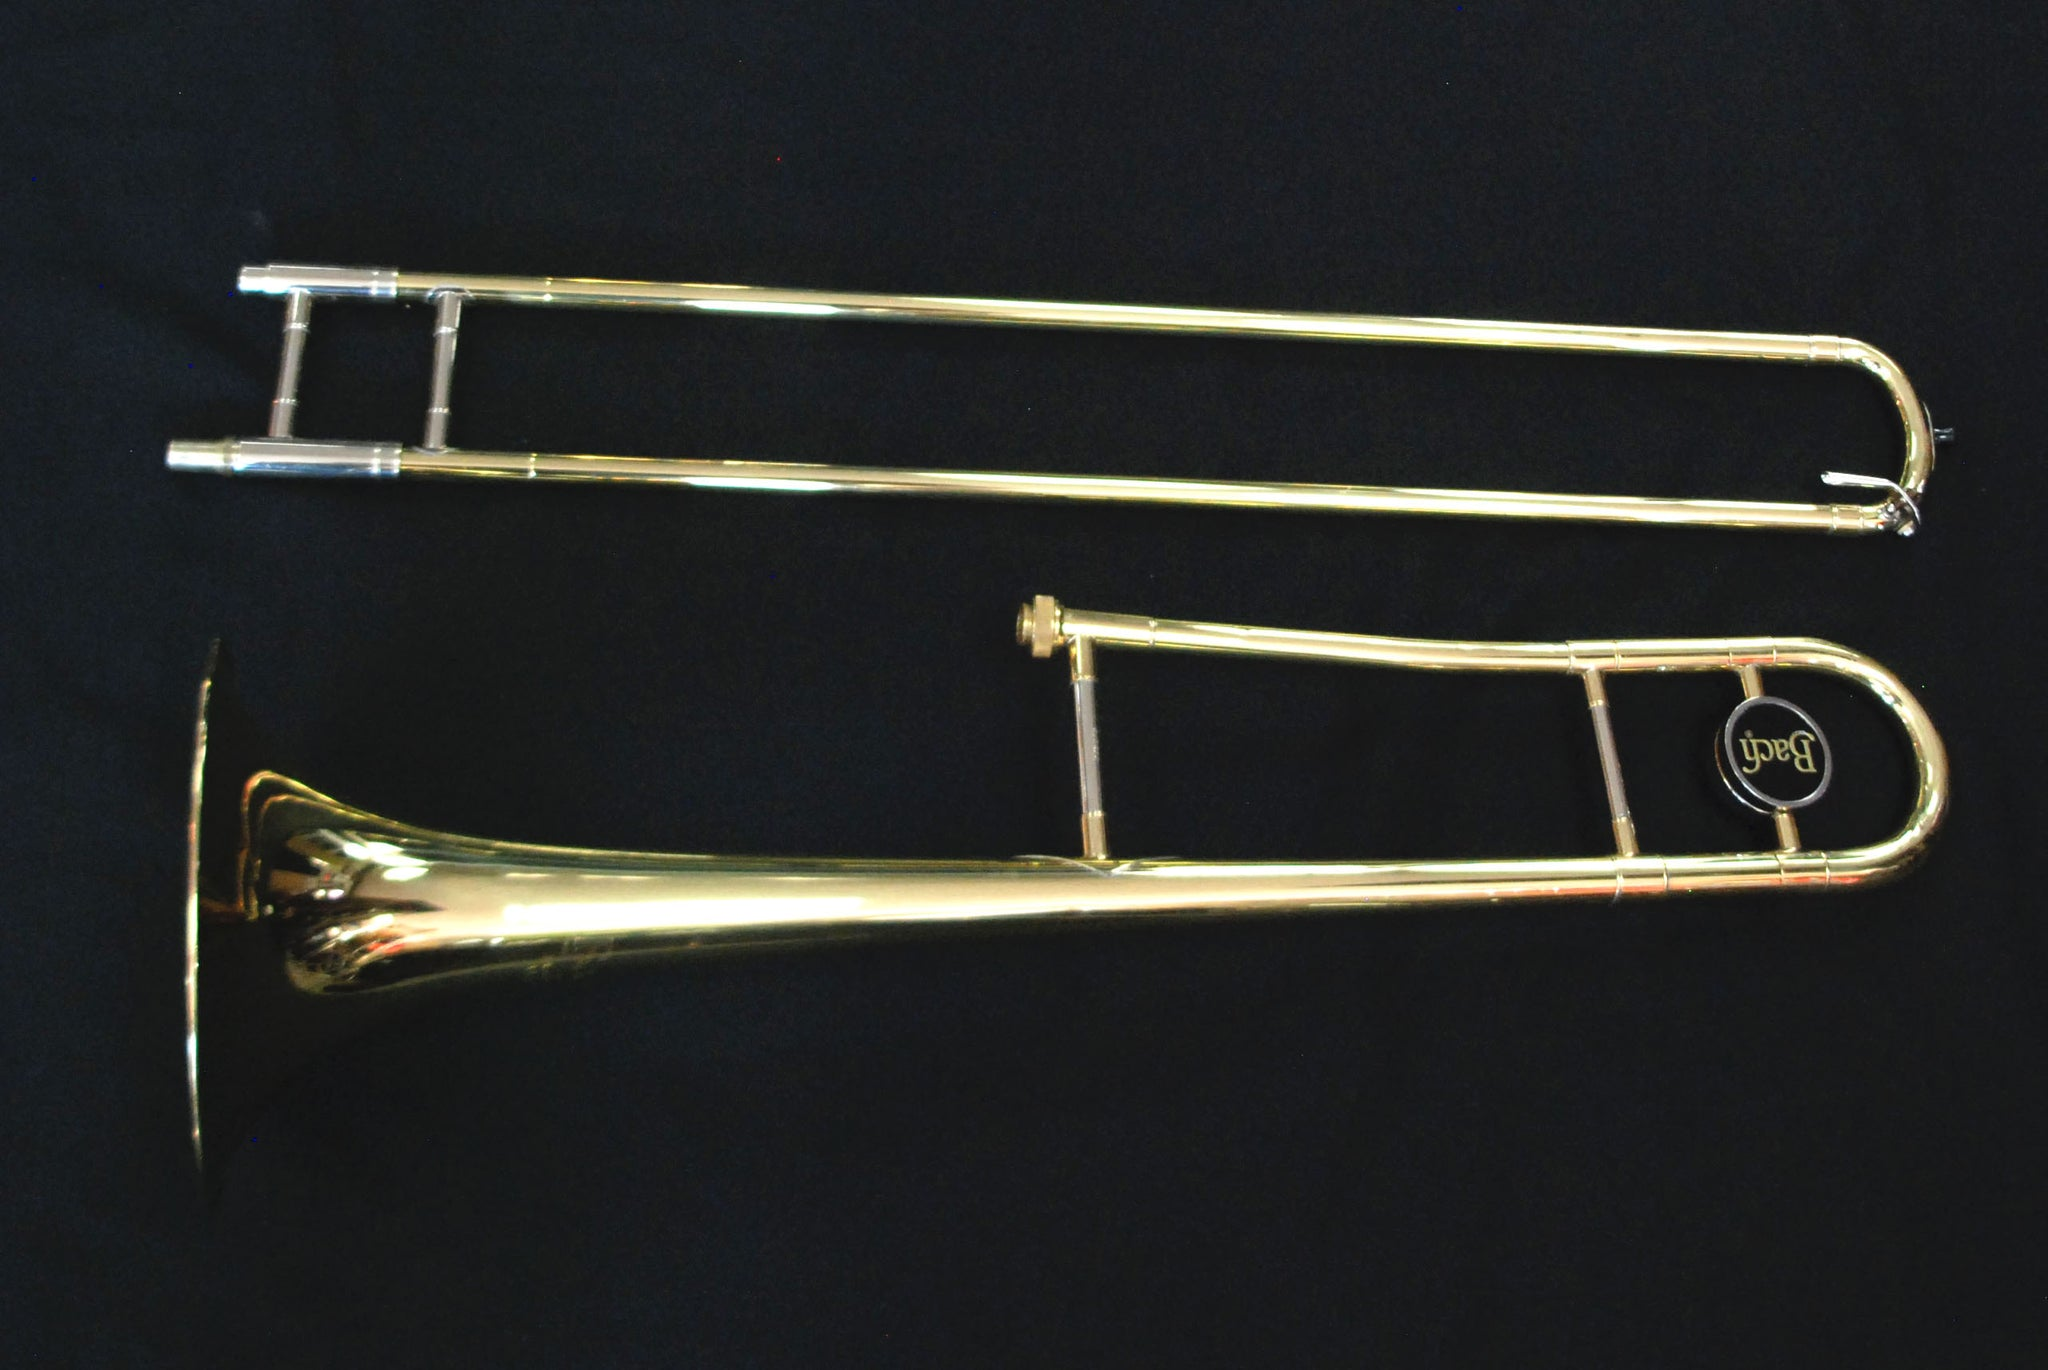 Shop online for Bach Student Trombone today.  Now available for purchase from Midlothian Music of Orland Park, Illinois, USA